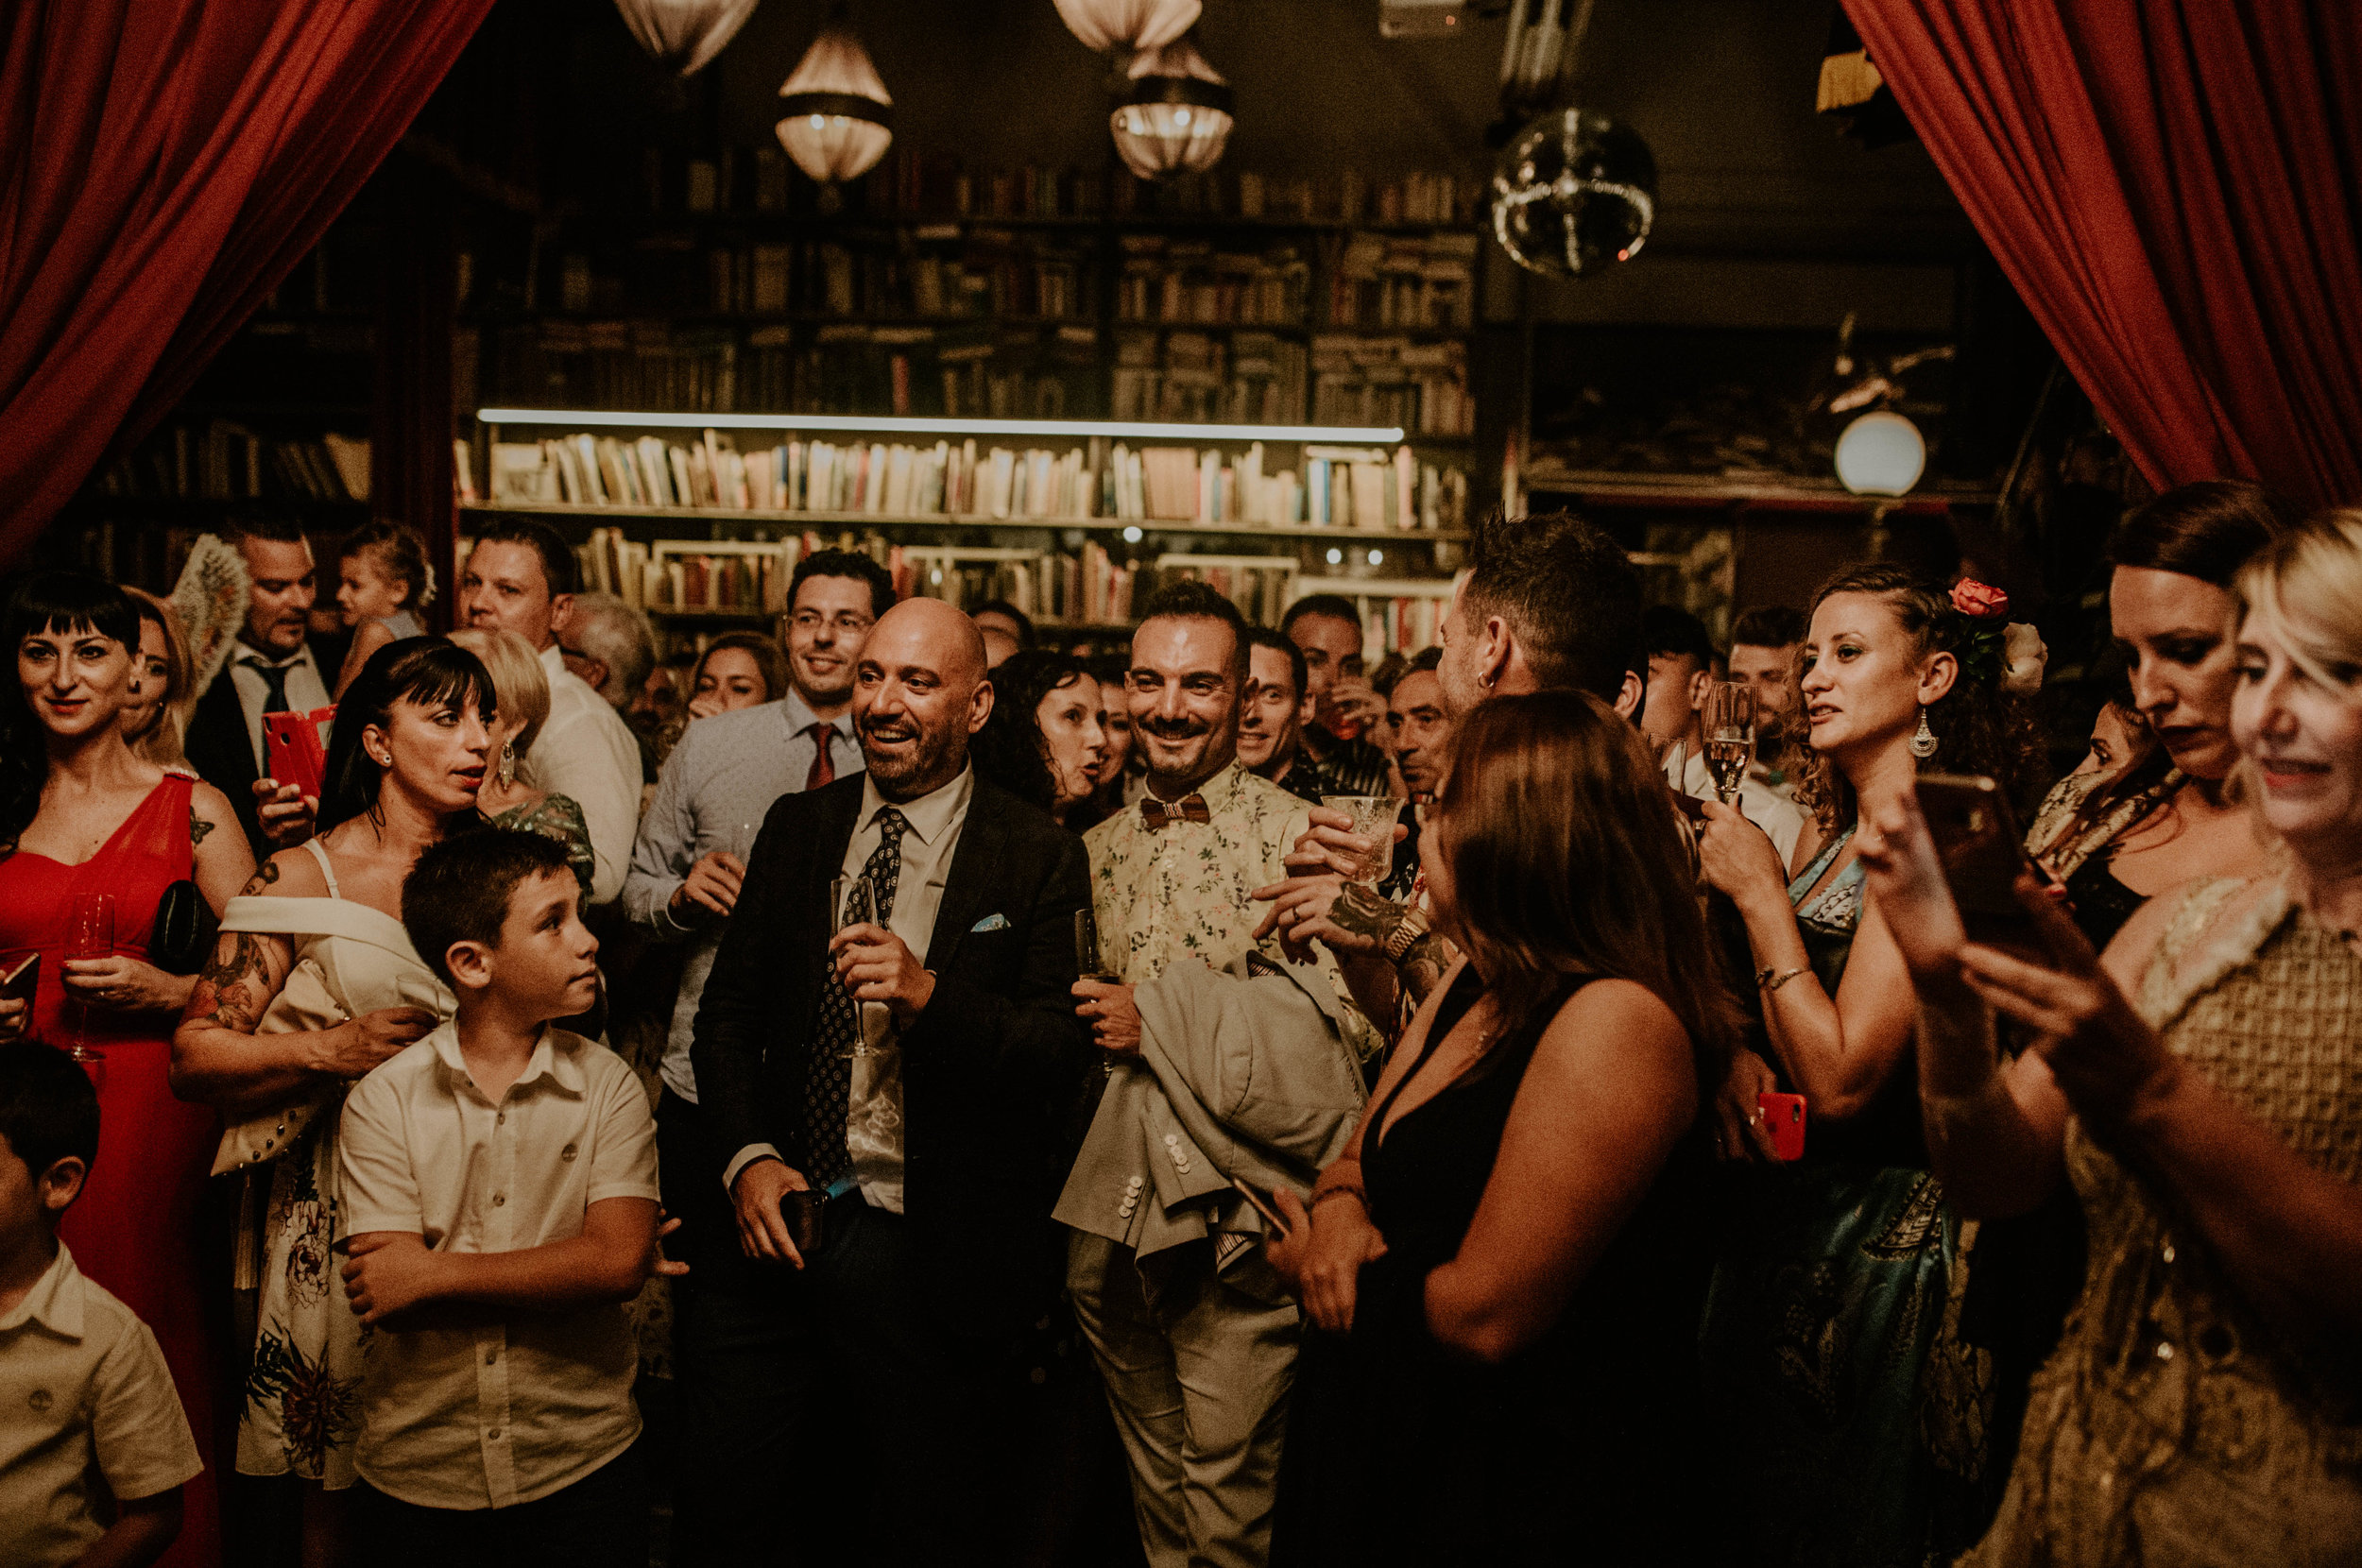 thenortherngirlphotography_bodasindustriales_bodasdiferentes_weddingphotographer_spanishphotographer_spanisgweddingphotographer_happyendings_mercantic_elsiglomercantic_antichrist_love_neon_weddingtattoo_CYNTHIAMANOLO-856.jpg